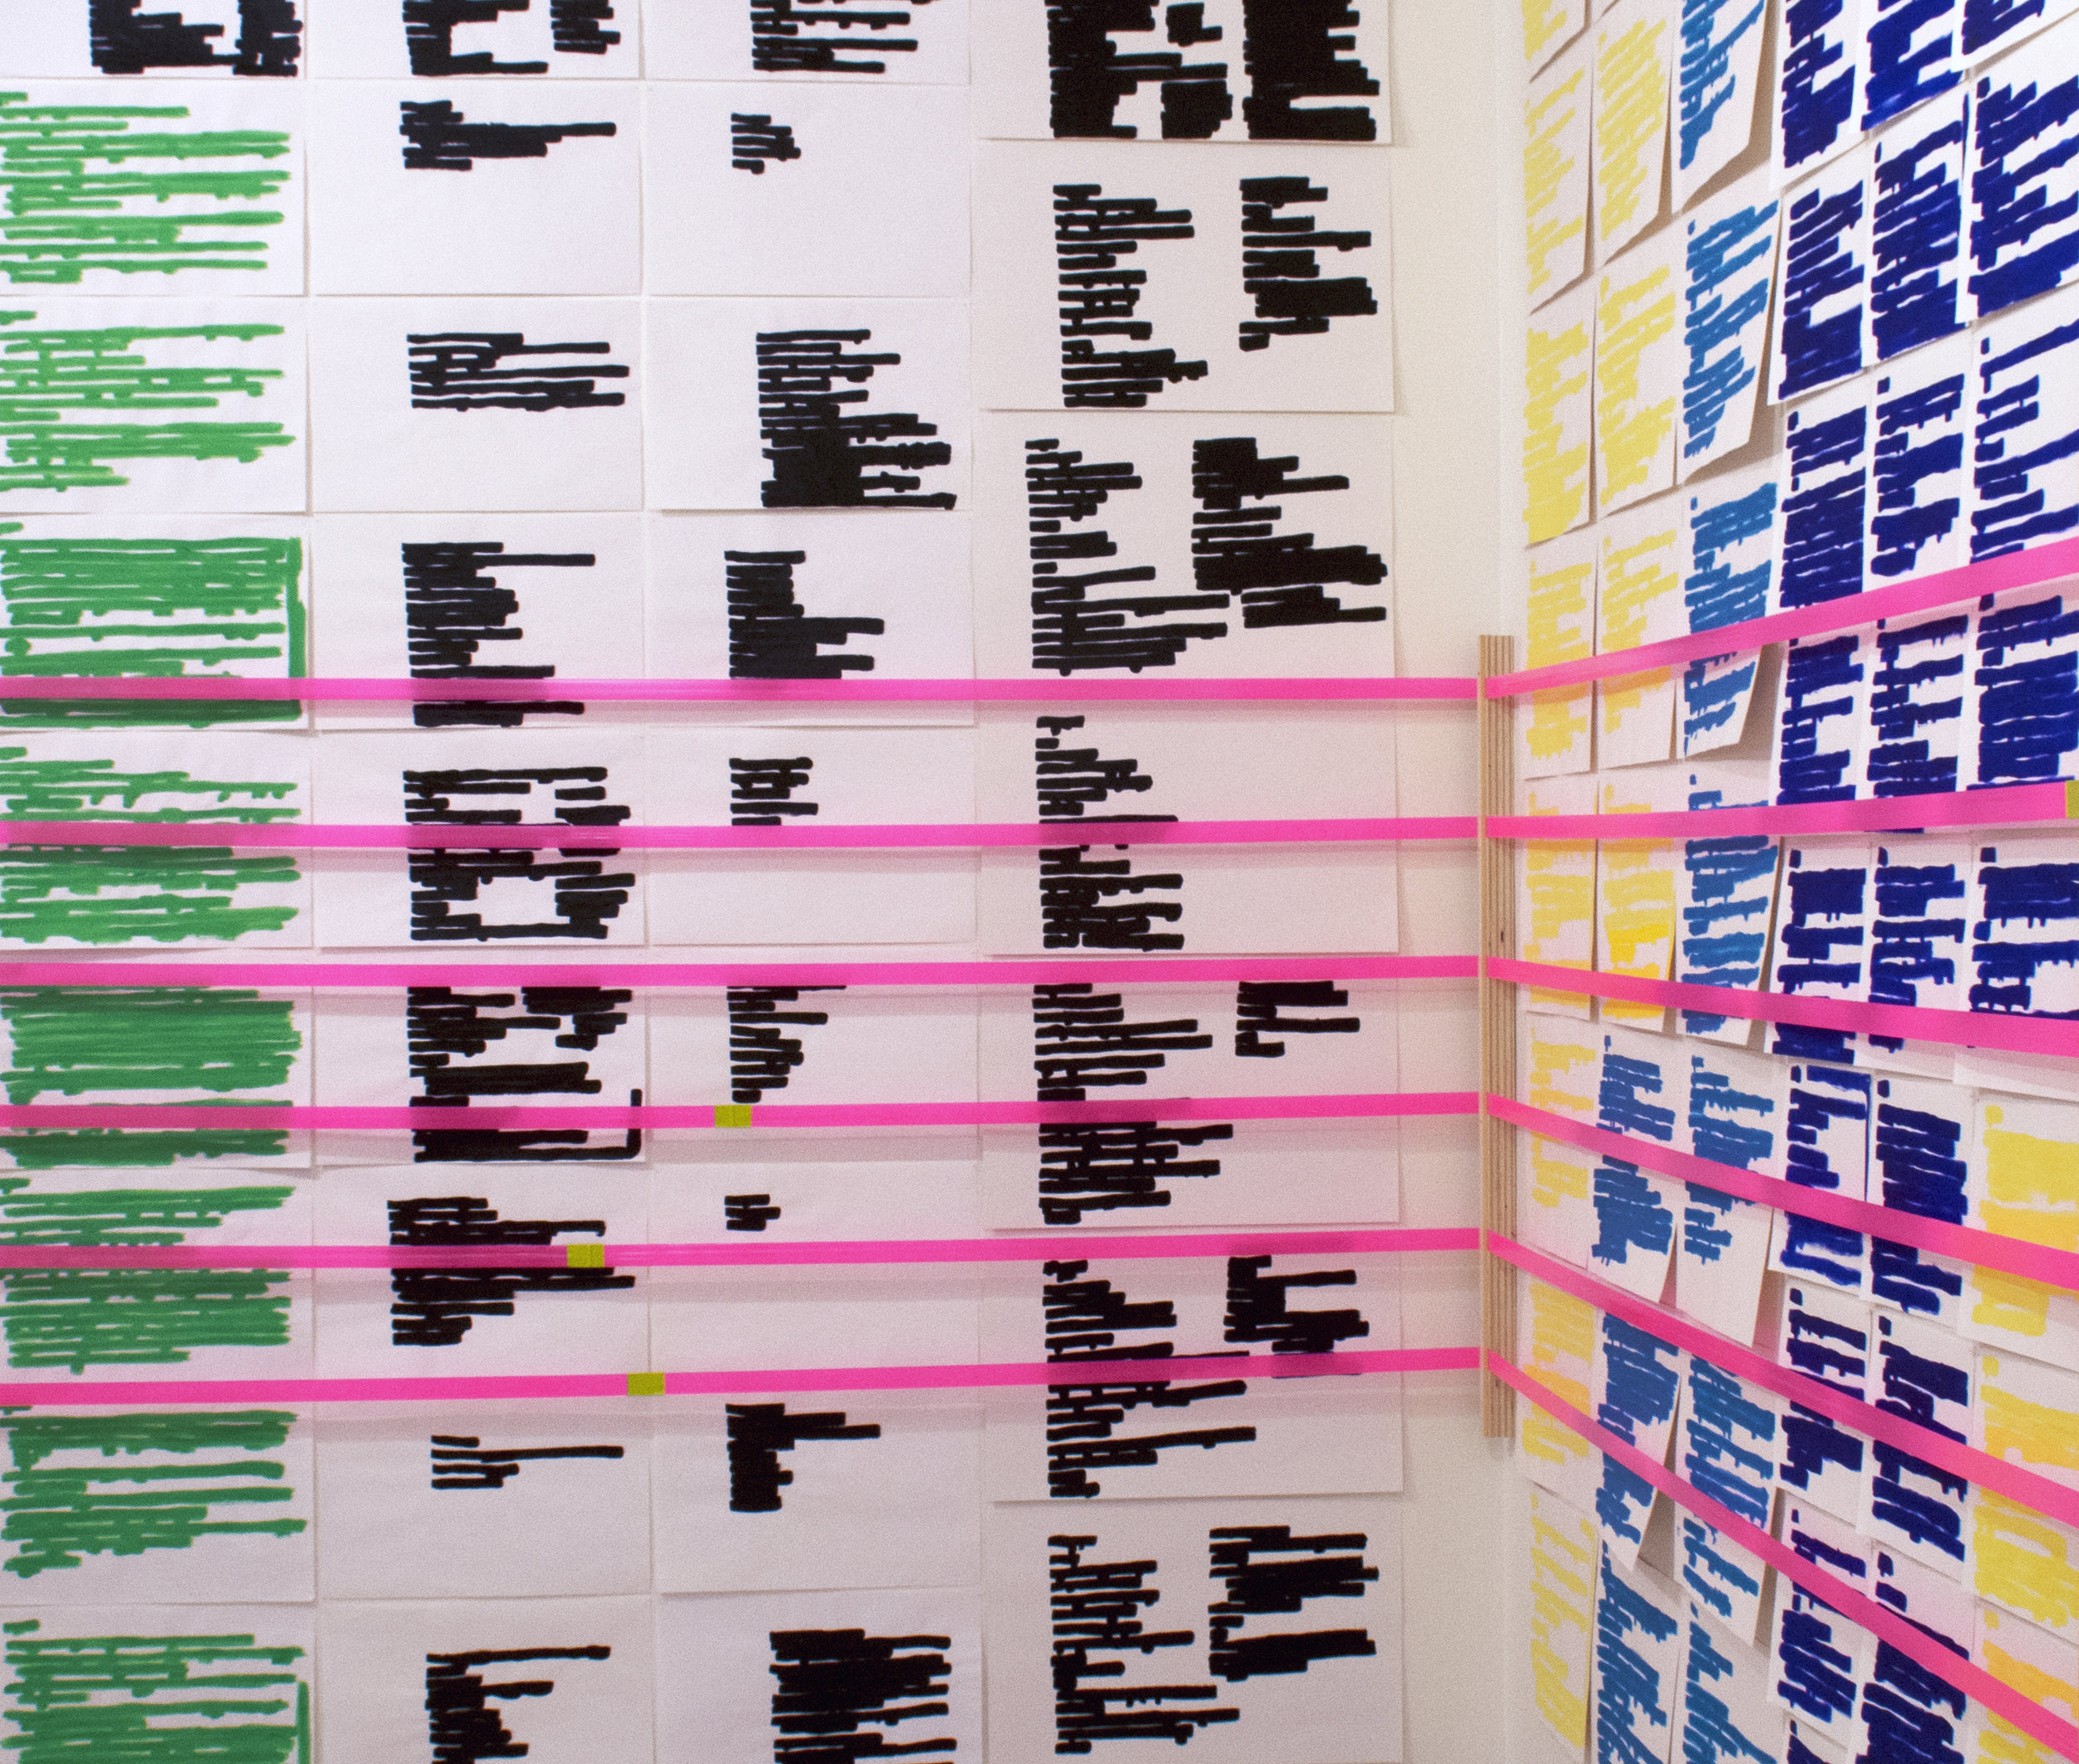 """LEAH GARNETT Room for Unknowing Marker, acrylic paint, gouache, vinyl tape, flagging tape, wood. Individual Drawings: varying dimensions from 8.5"""" x 11' to 13"""" x 24"""" Installation dimensions vary from site to site."""